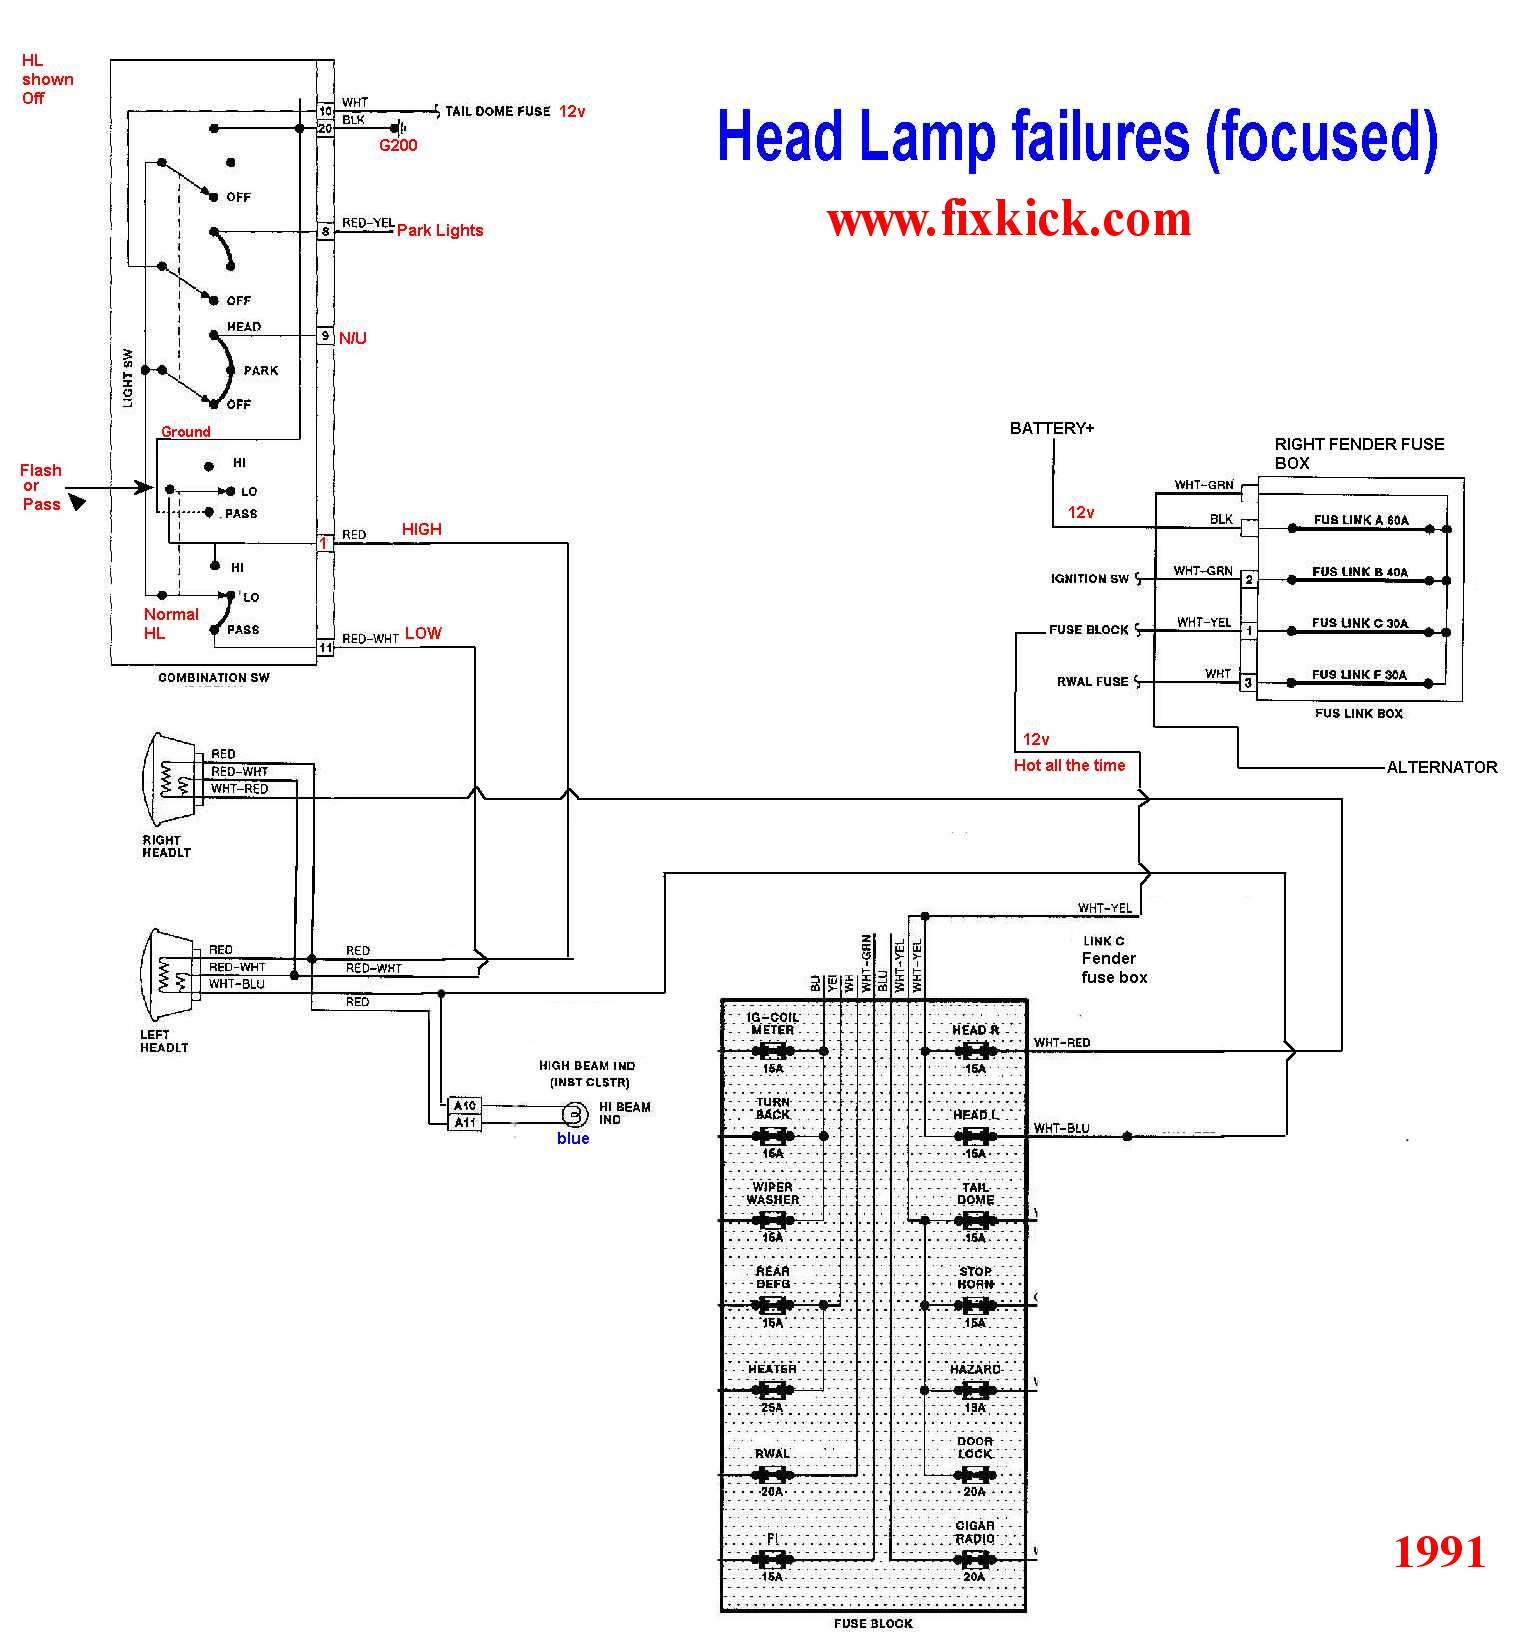 HL1A schematics to run engine 1995 geo metro fuse box diagram at soozxer.org